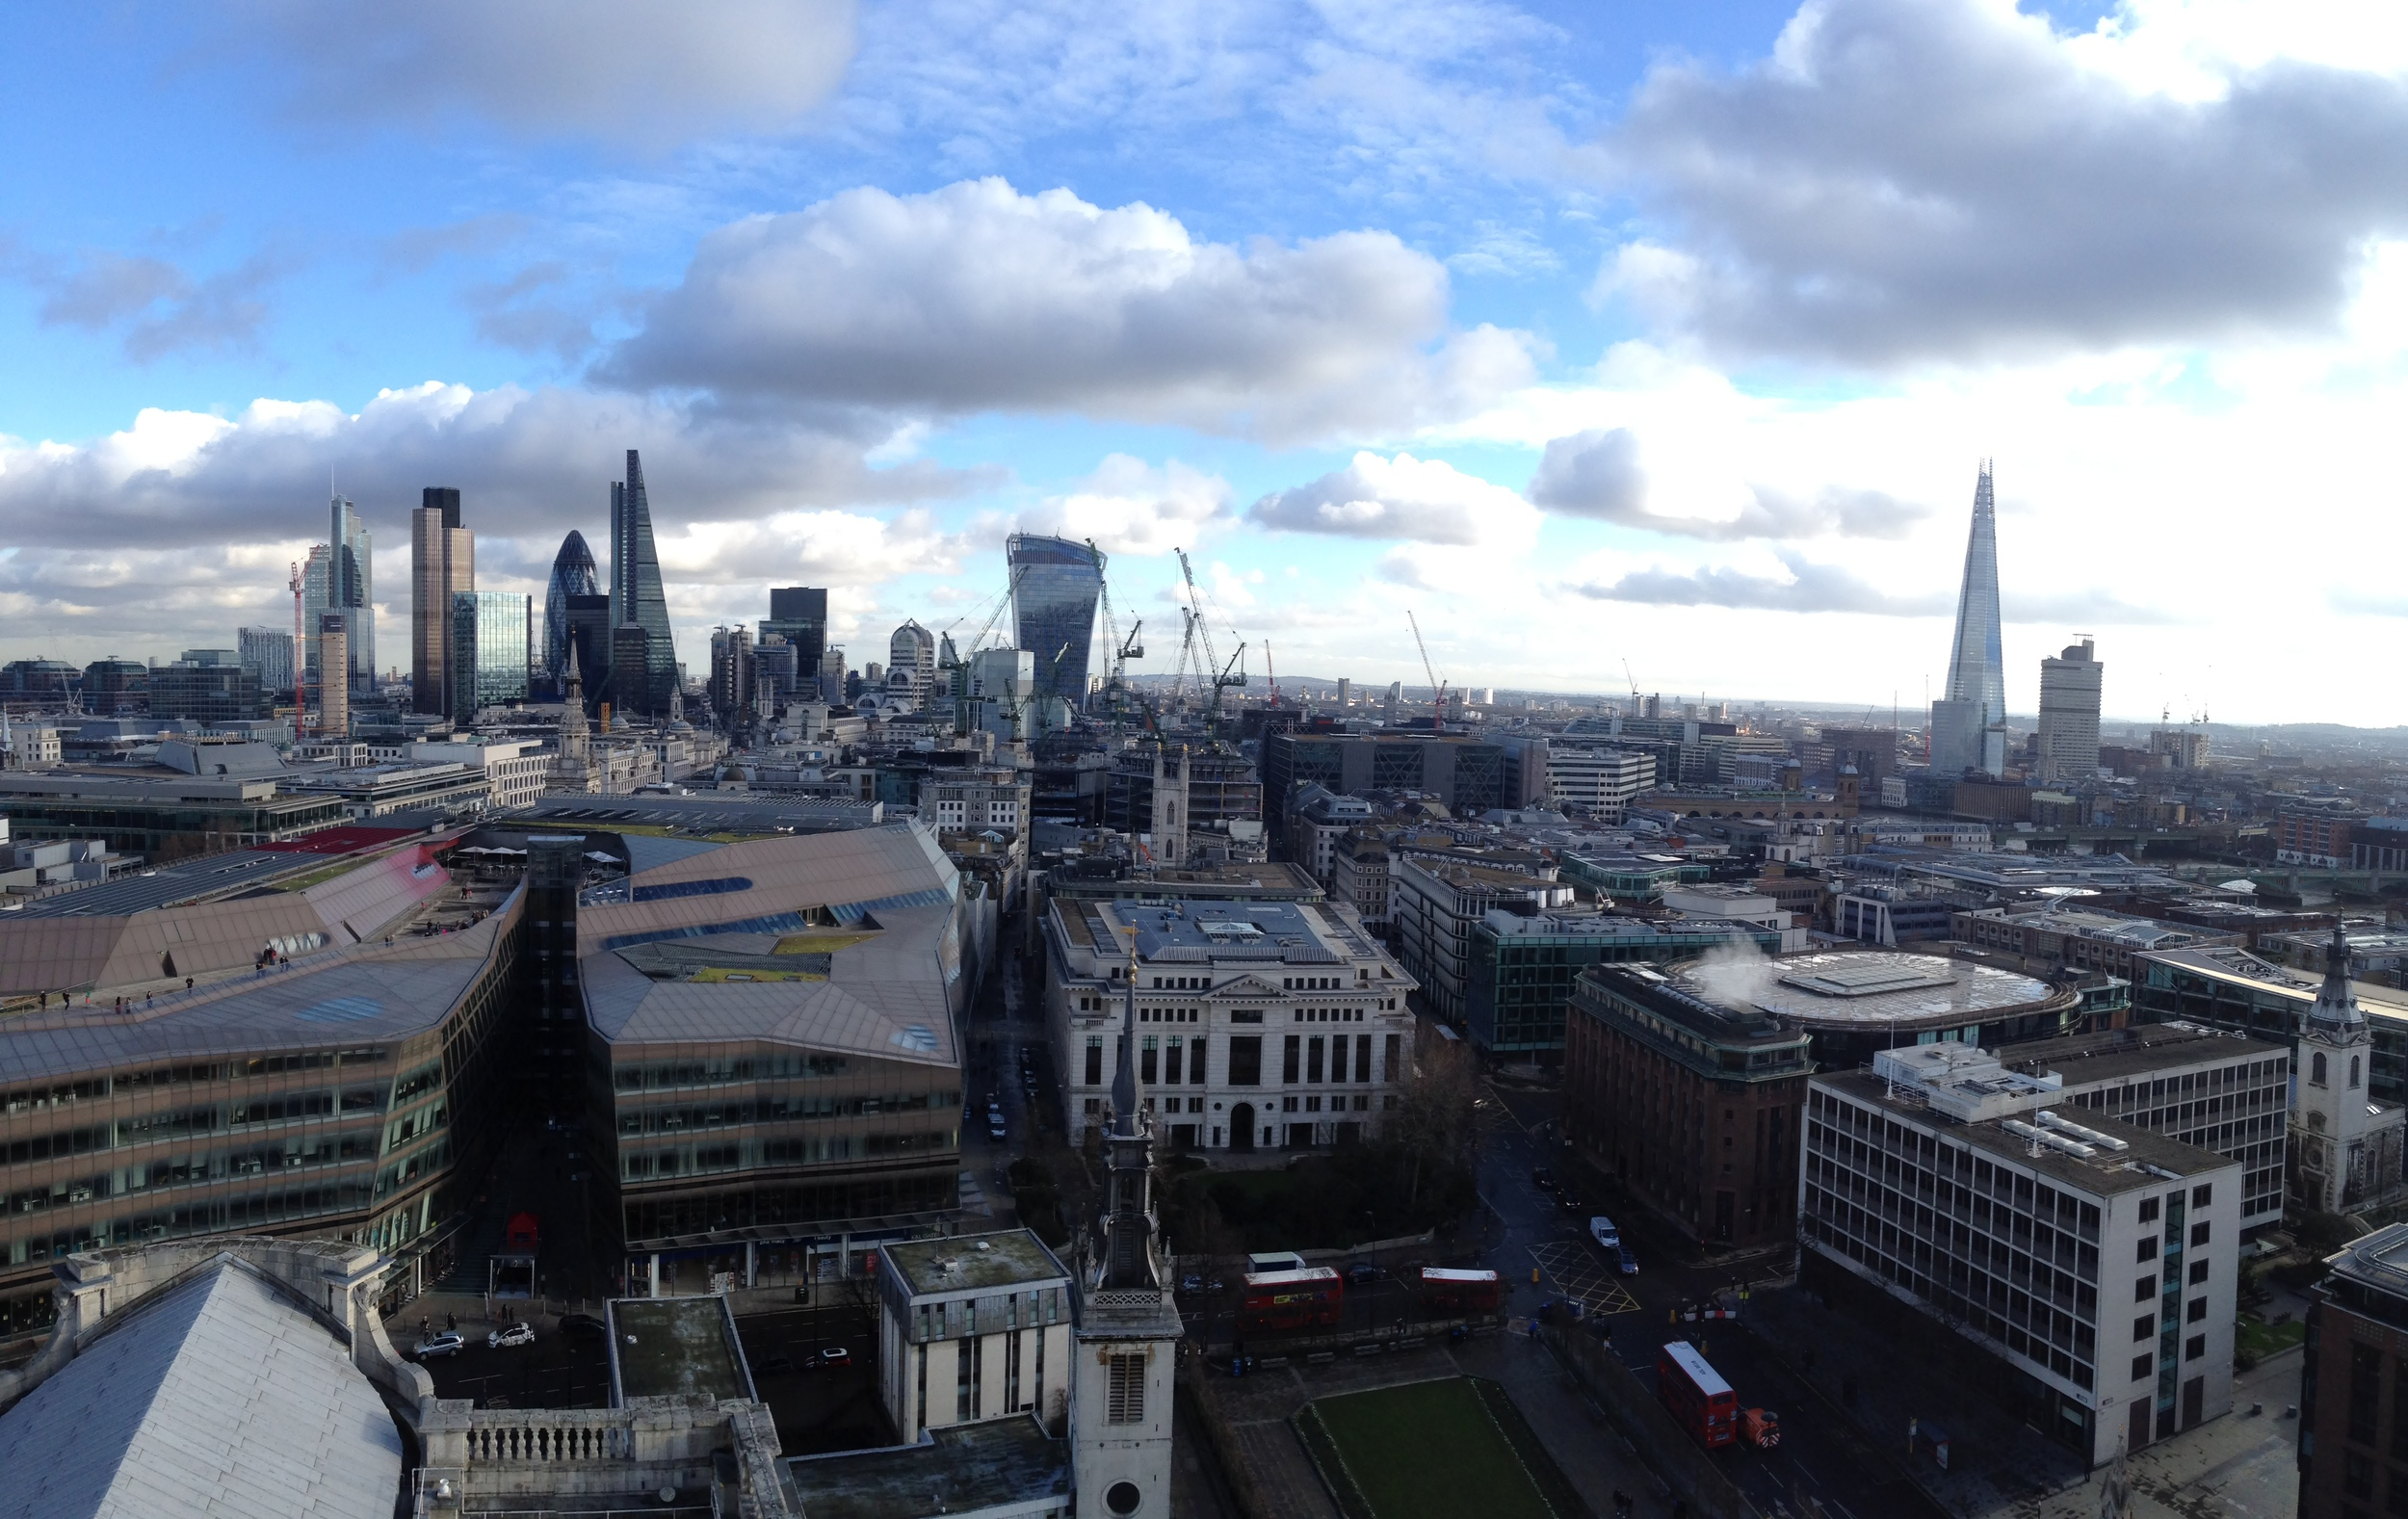 View from the top of St. Paul's - London, UK